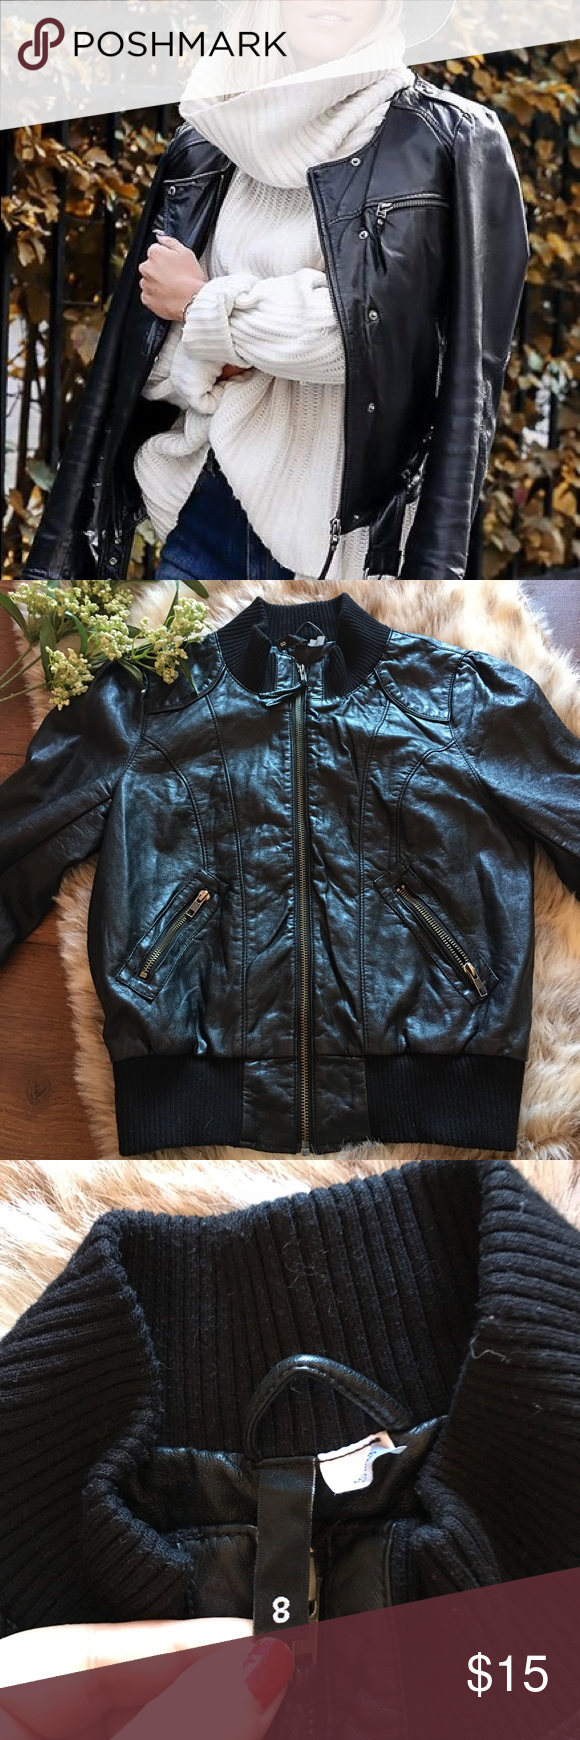 Black Leather Jacket By H&M Black Leather Jacket By H&M